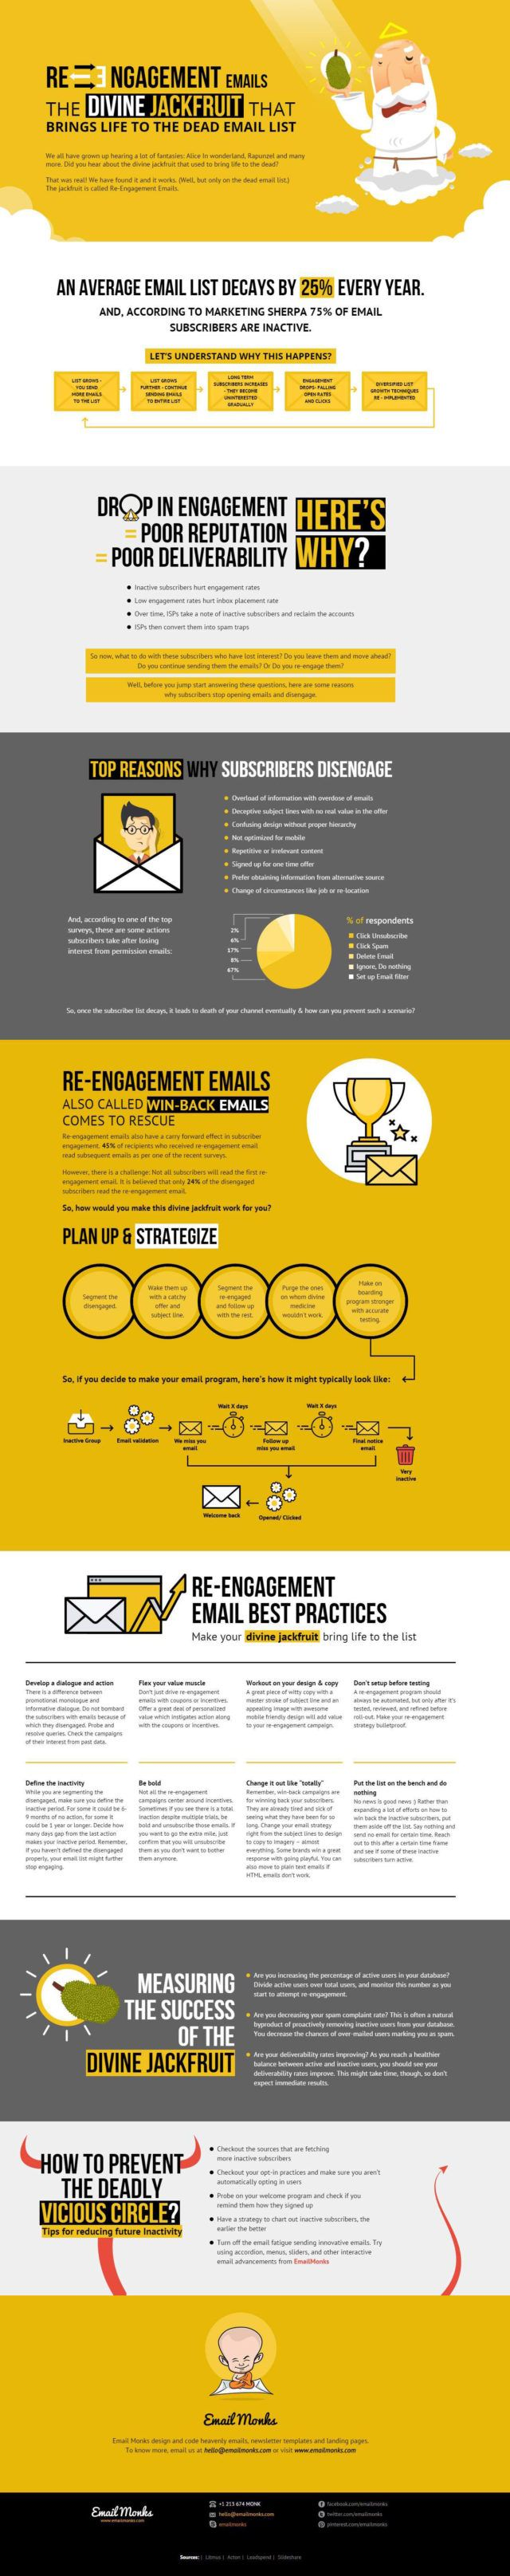 Email Re-Engagement Campaign Infographic